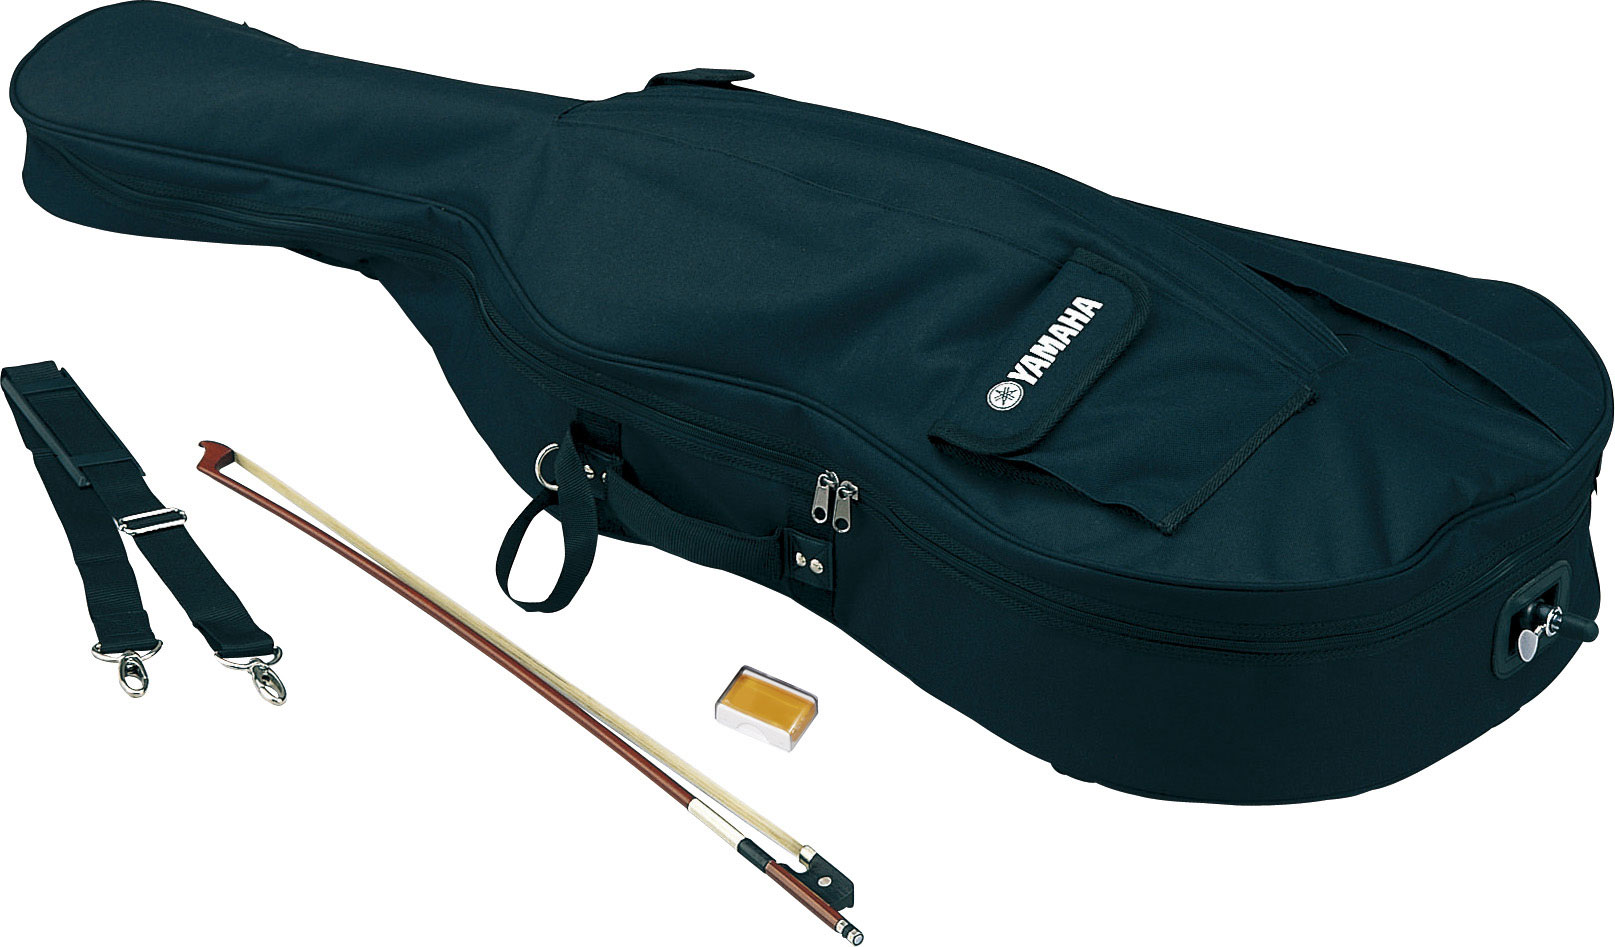 Sets include lightweight soft case, bow and rosin